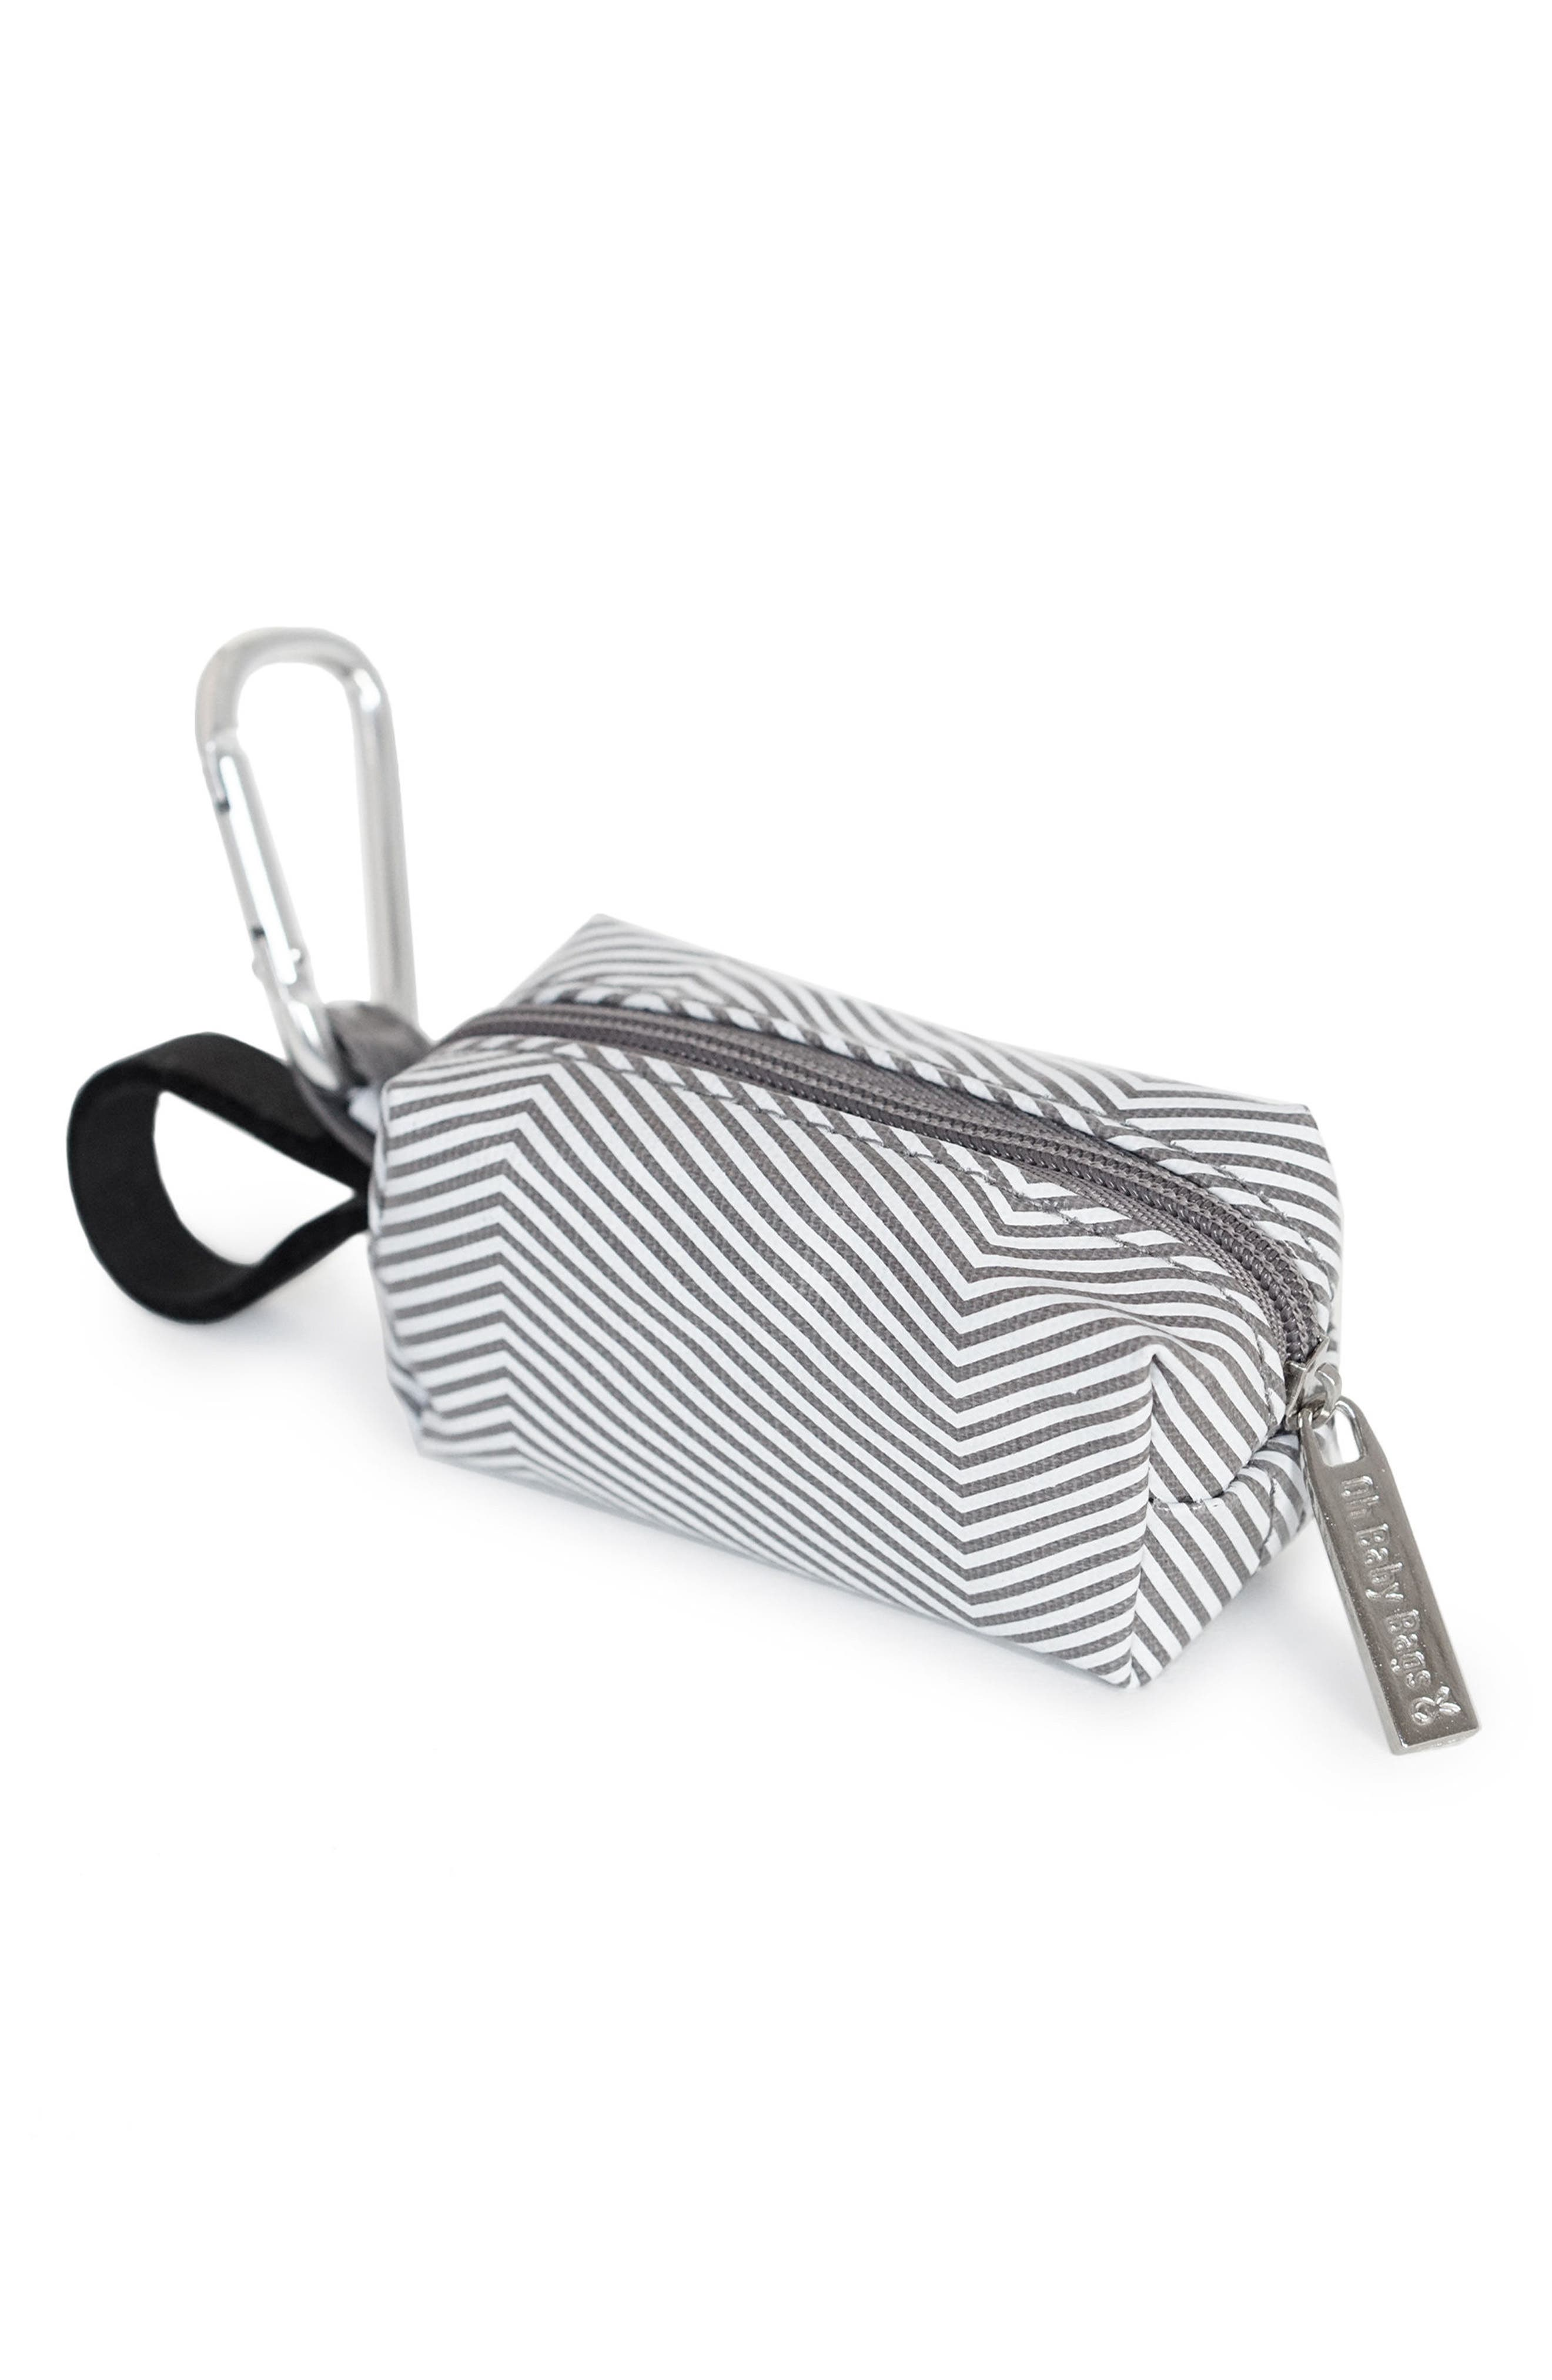 Portable Clip-On Dispenser with Bags,                         Main,                         color, GREY STRIPE